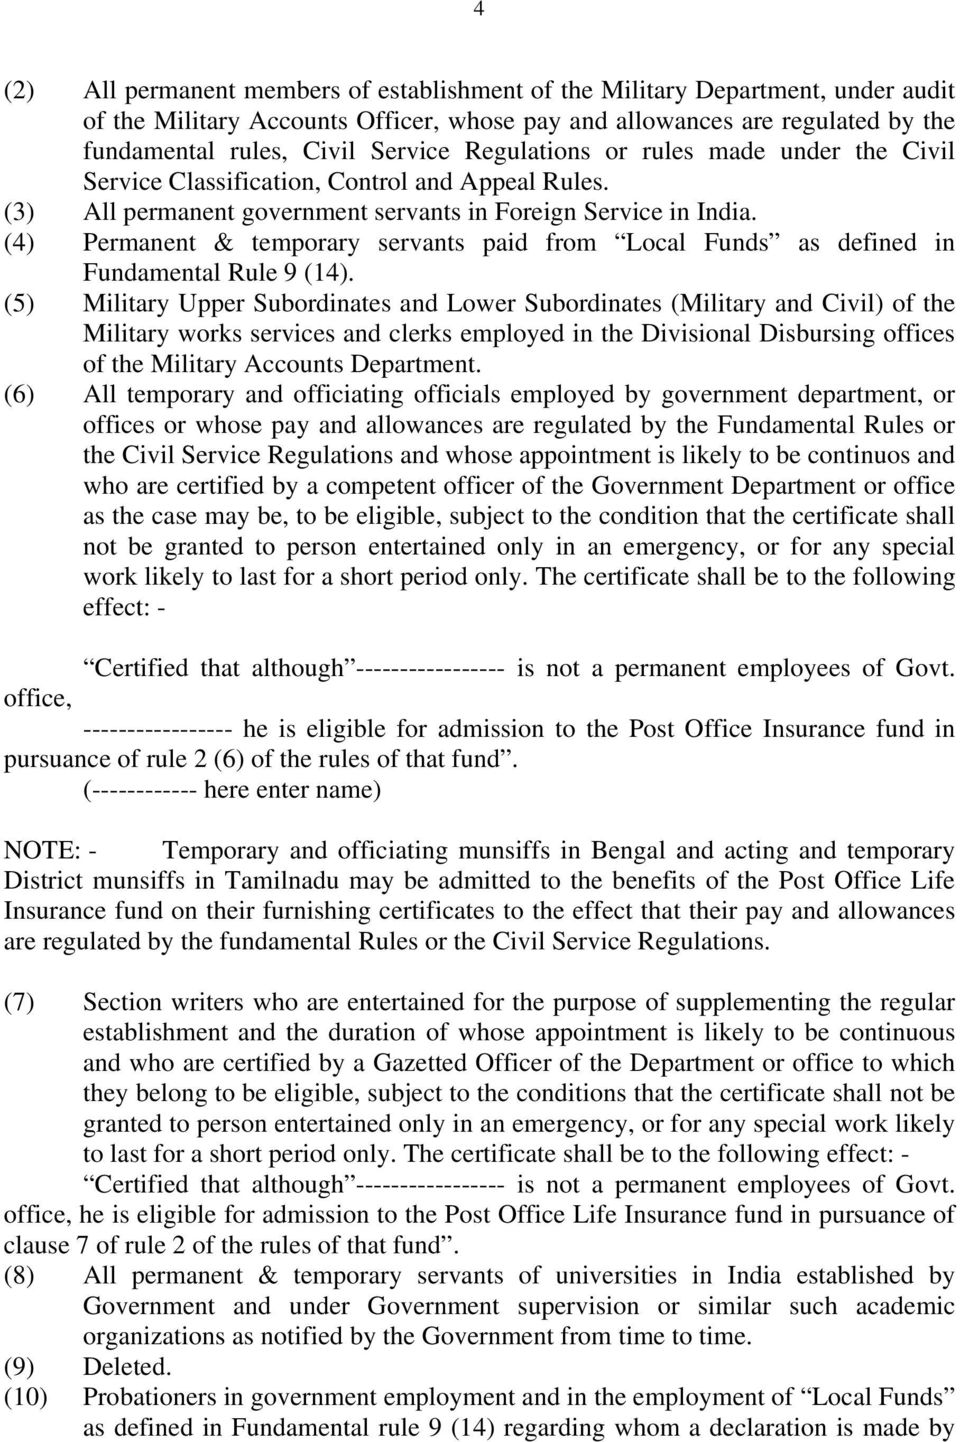 (4) Permanent & temporary servants paid from Local Funds as defined in Fundamental Rule 9 (14).